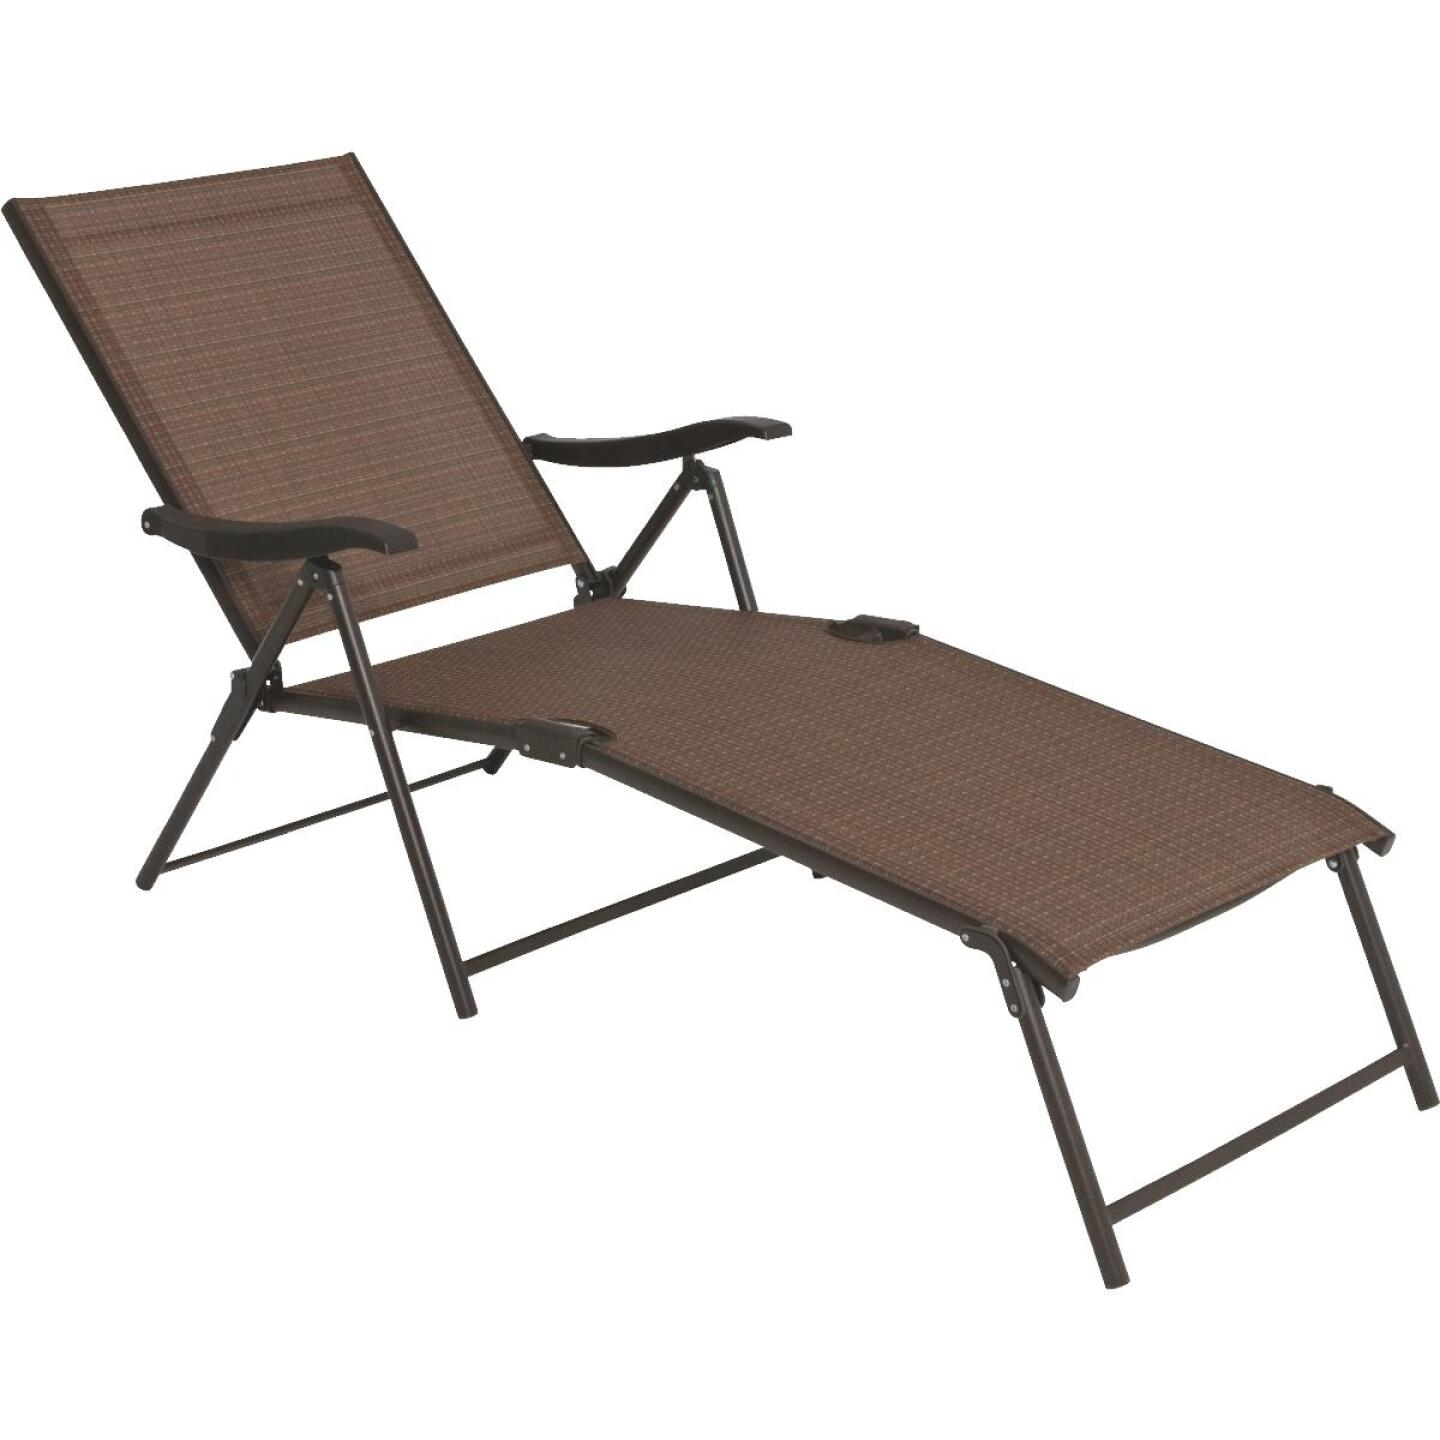 Outdoor Expressions Orleans Brown Folding Chaise Lounge Image 4